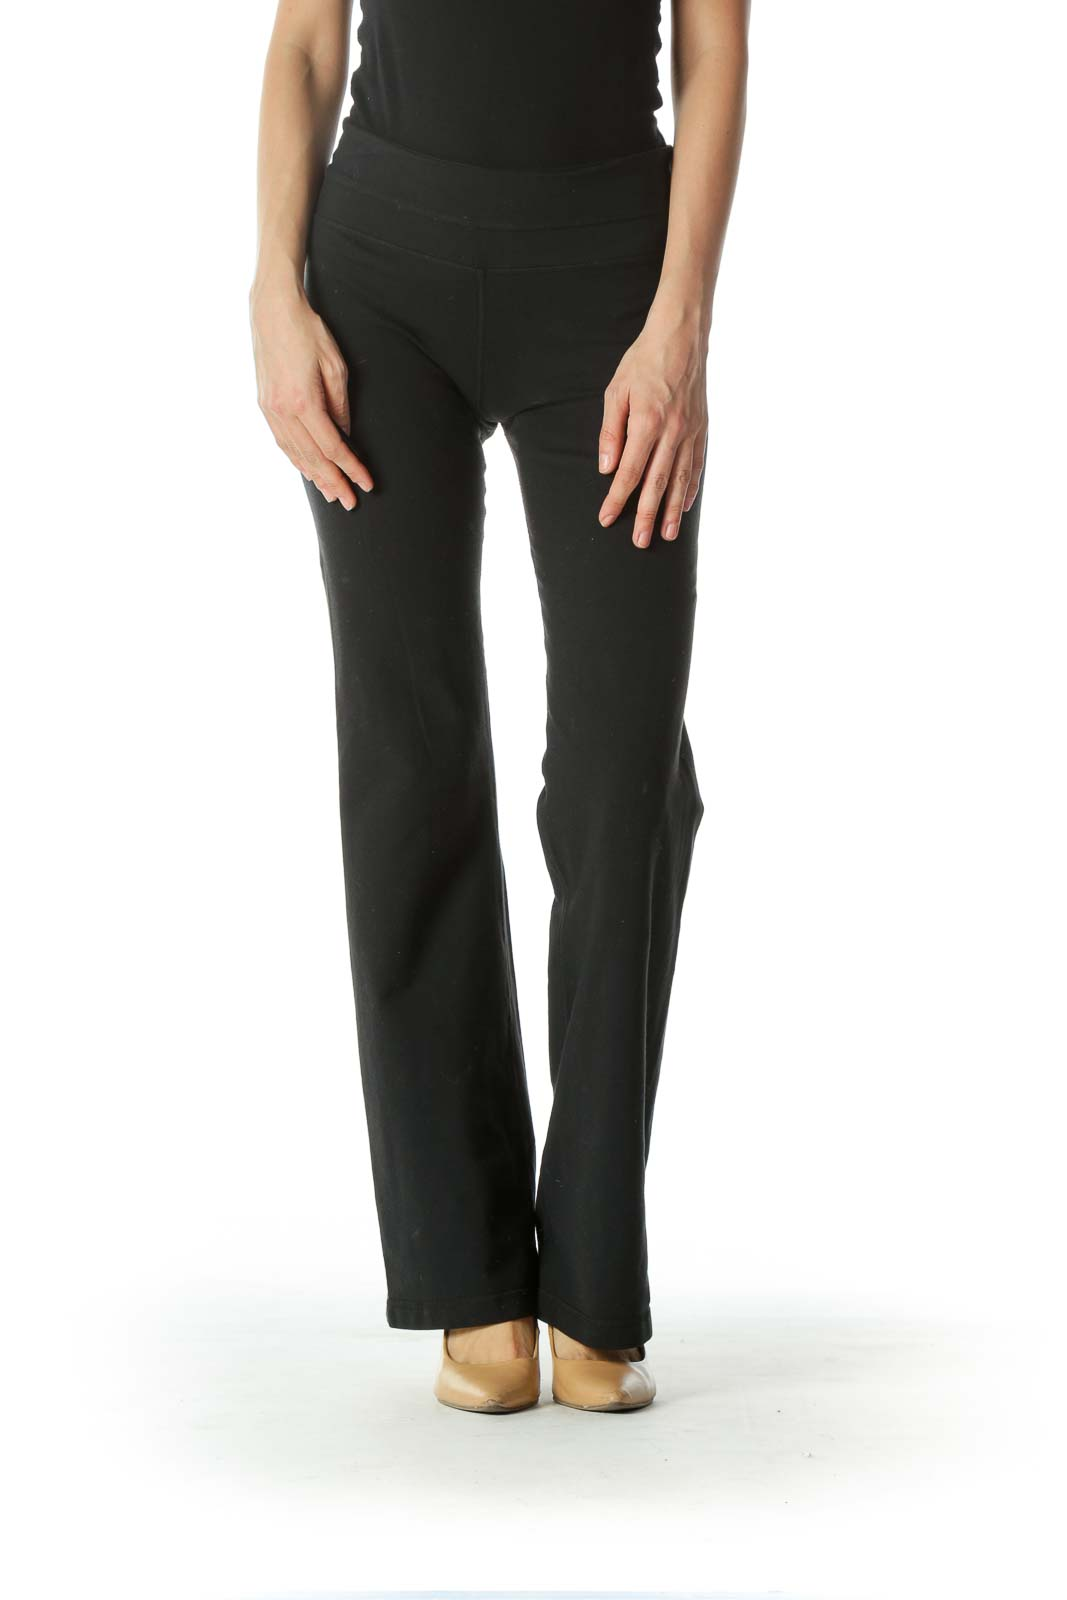 Black Stretchy Flared Sports Pants